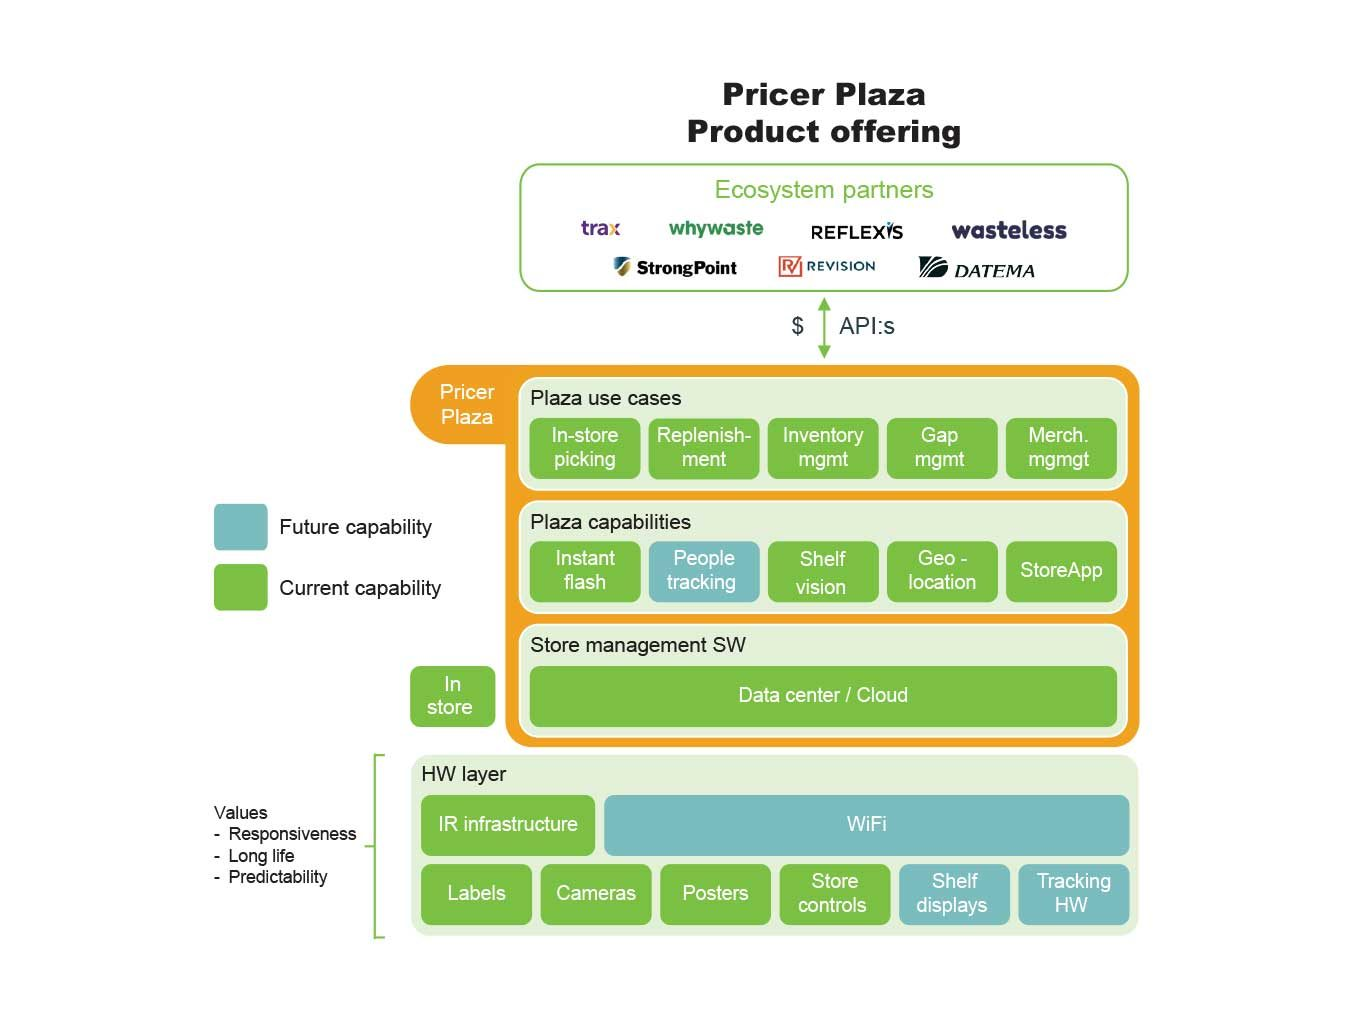 pricer-plaza-product-offering